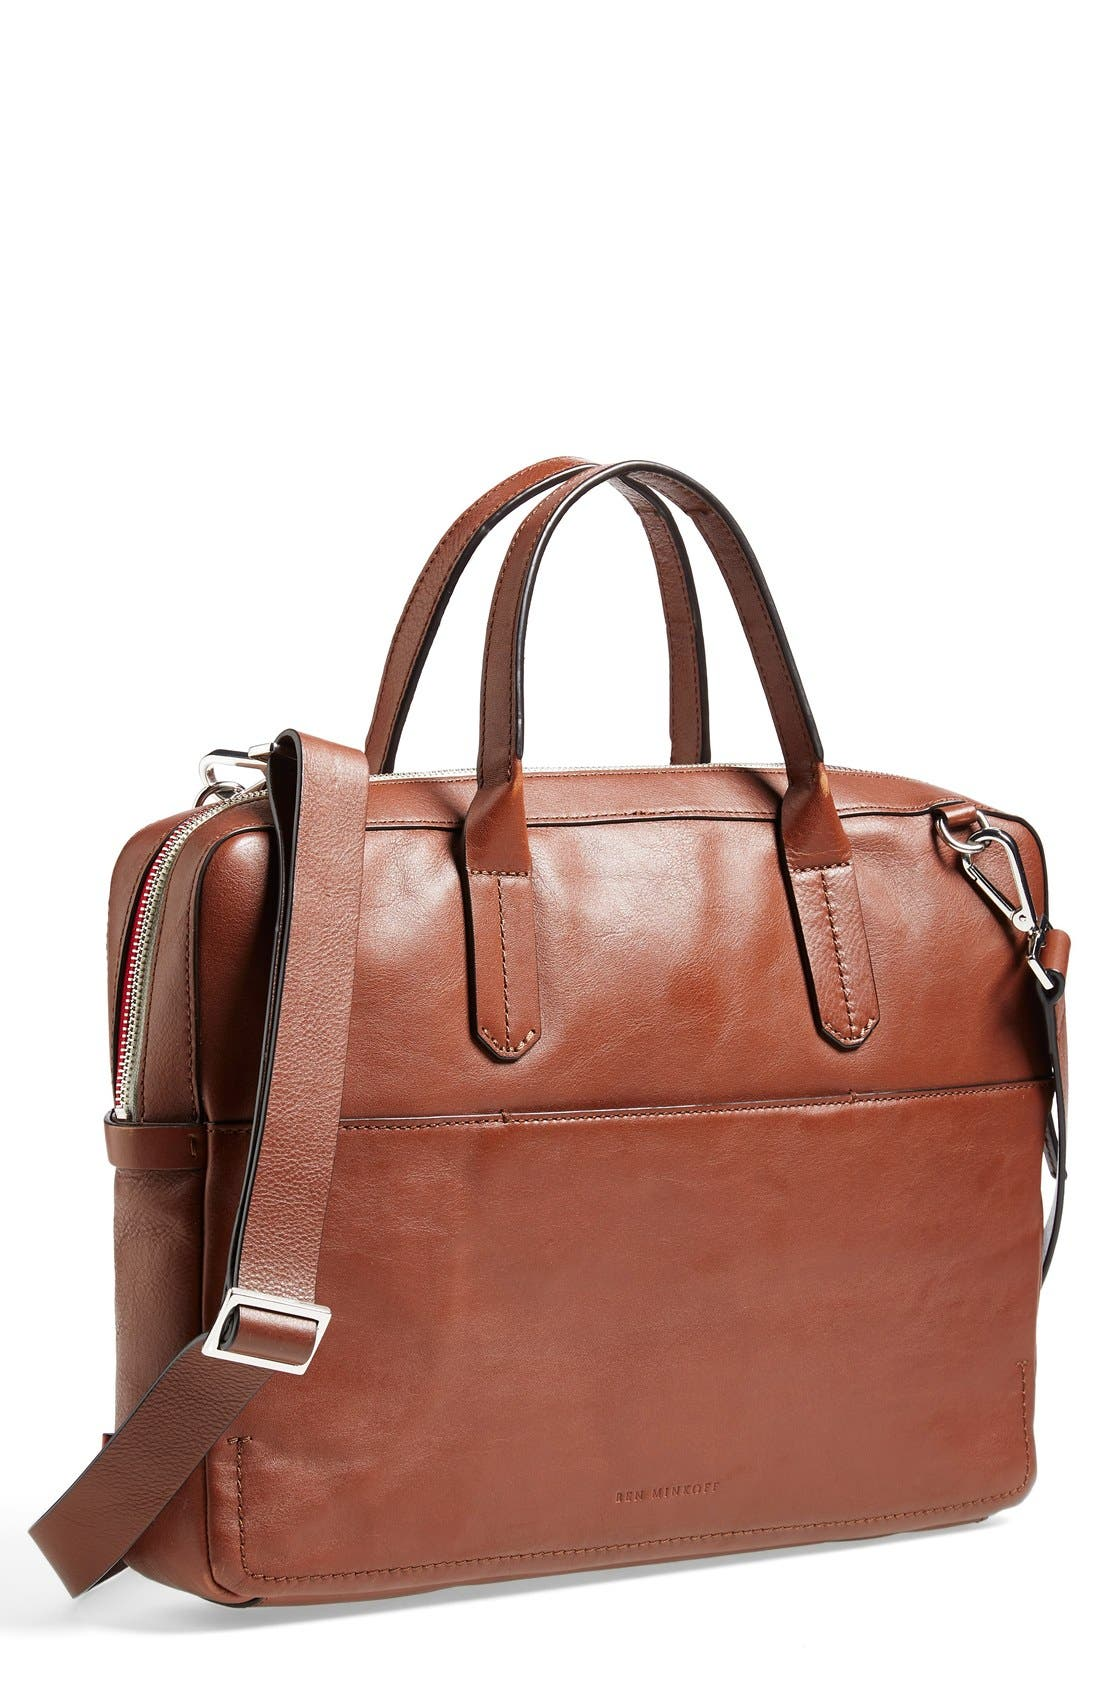 Ben Minkoff 'Fulton' Leather Briefcase,                             Main thumbnail 1, color,                             233